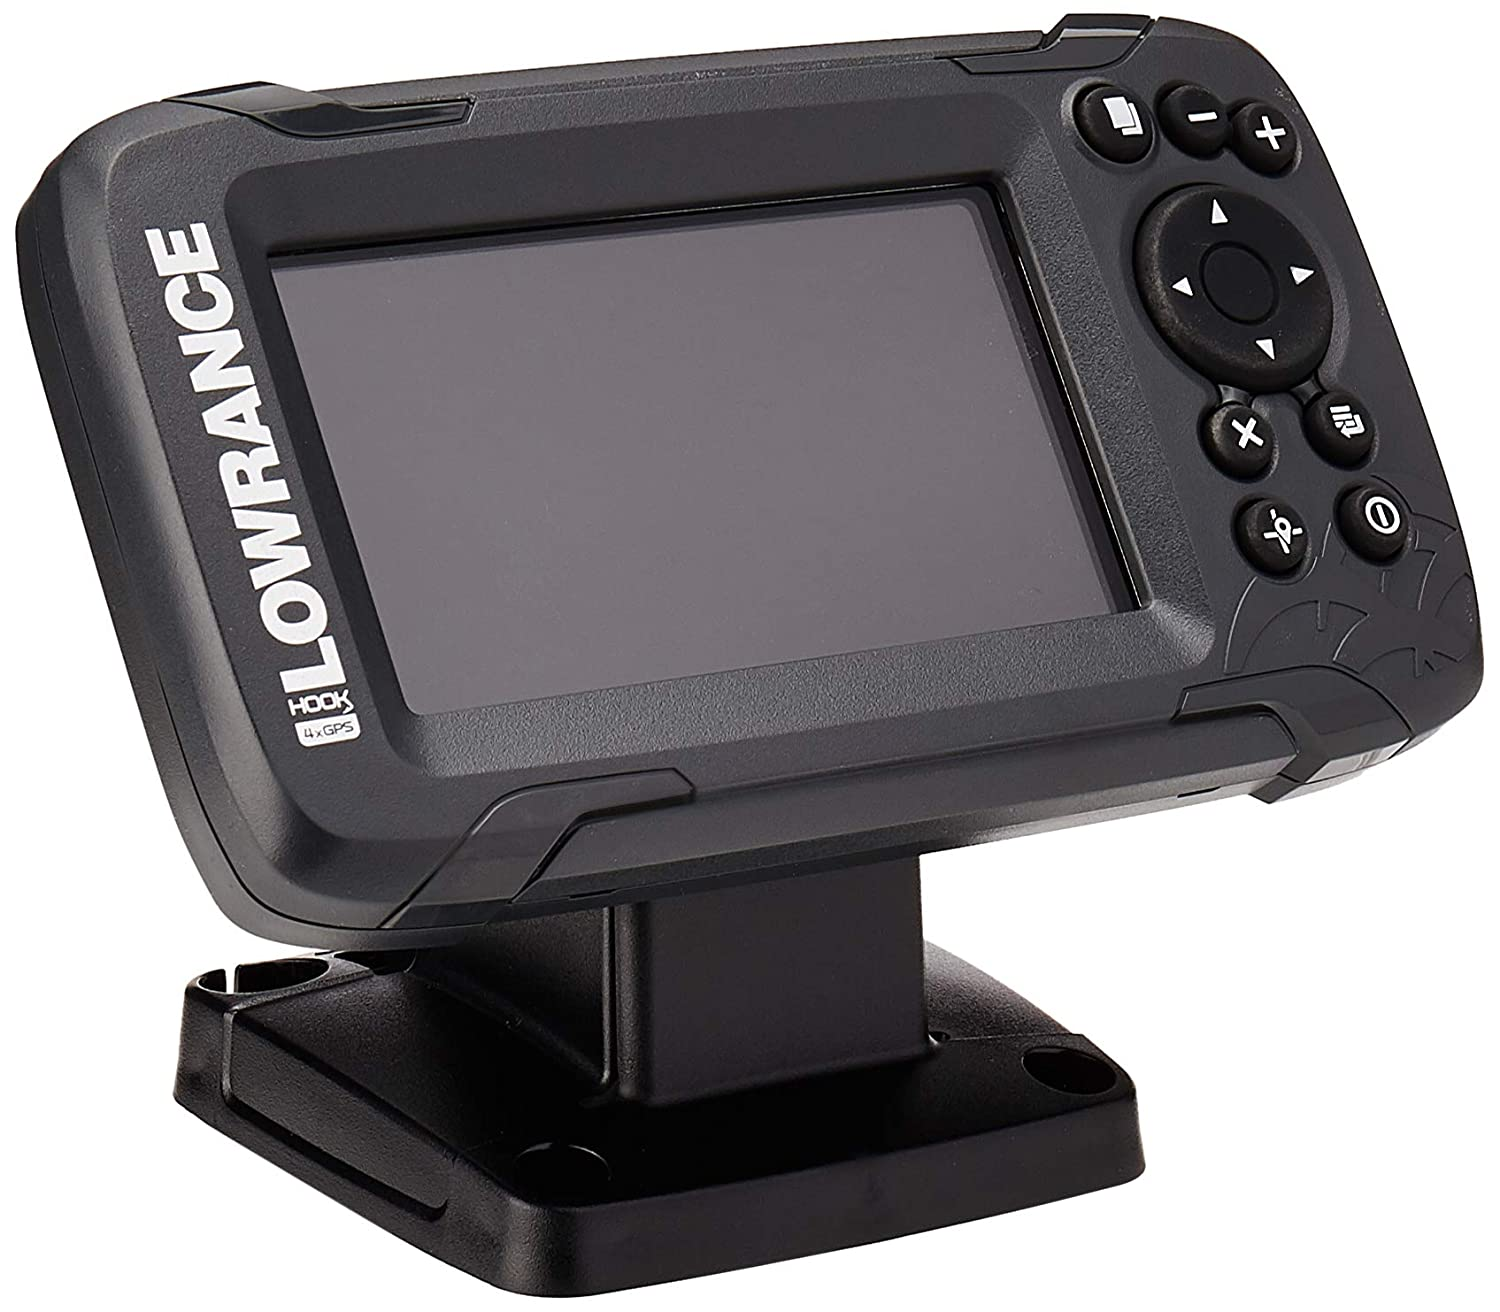 Lowrance HOOK2 4X - 4-inch Fish Finder